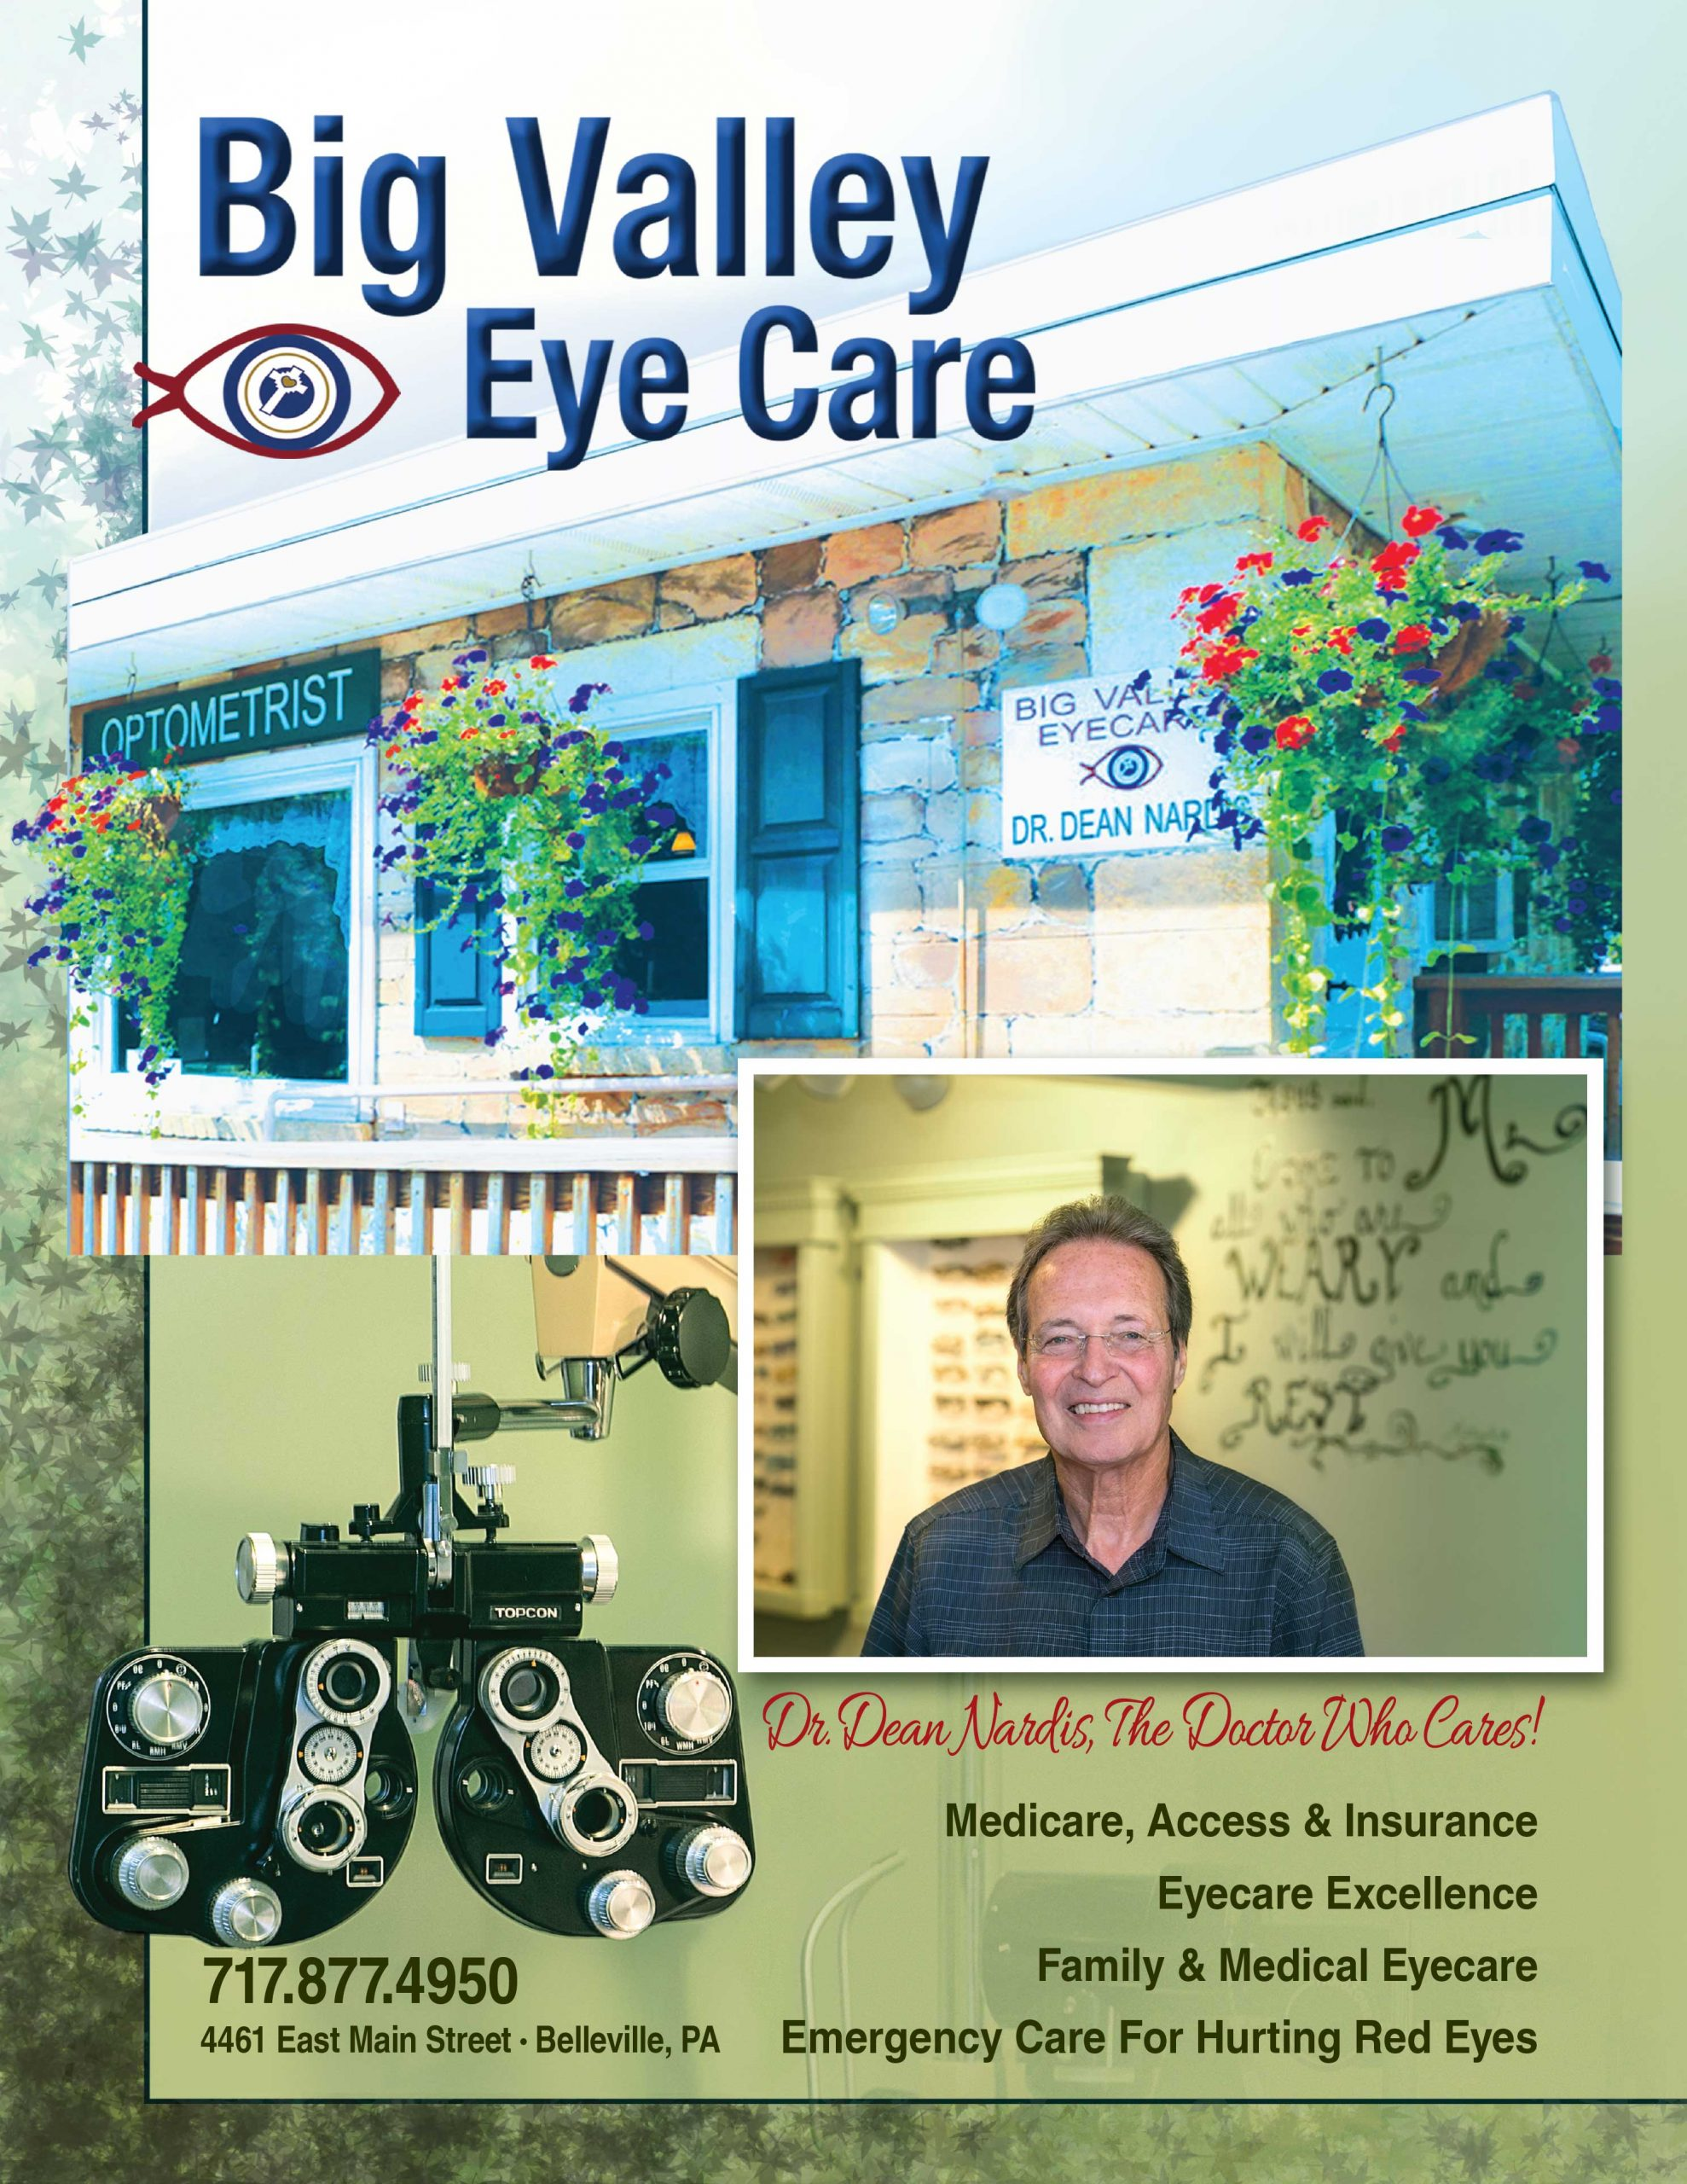 "<center>Big Valley Eye Care | <b><a href=""tel:717-877-4950"">CLICK TO CALL (717) 877-4950</a></b></center>"